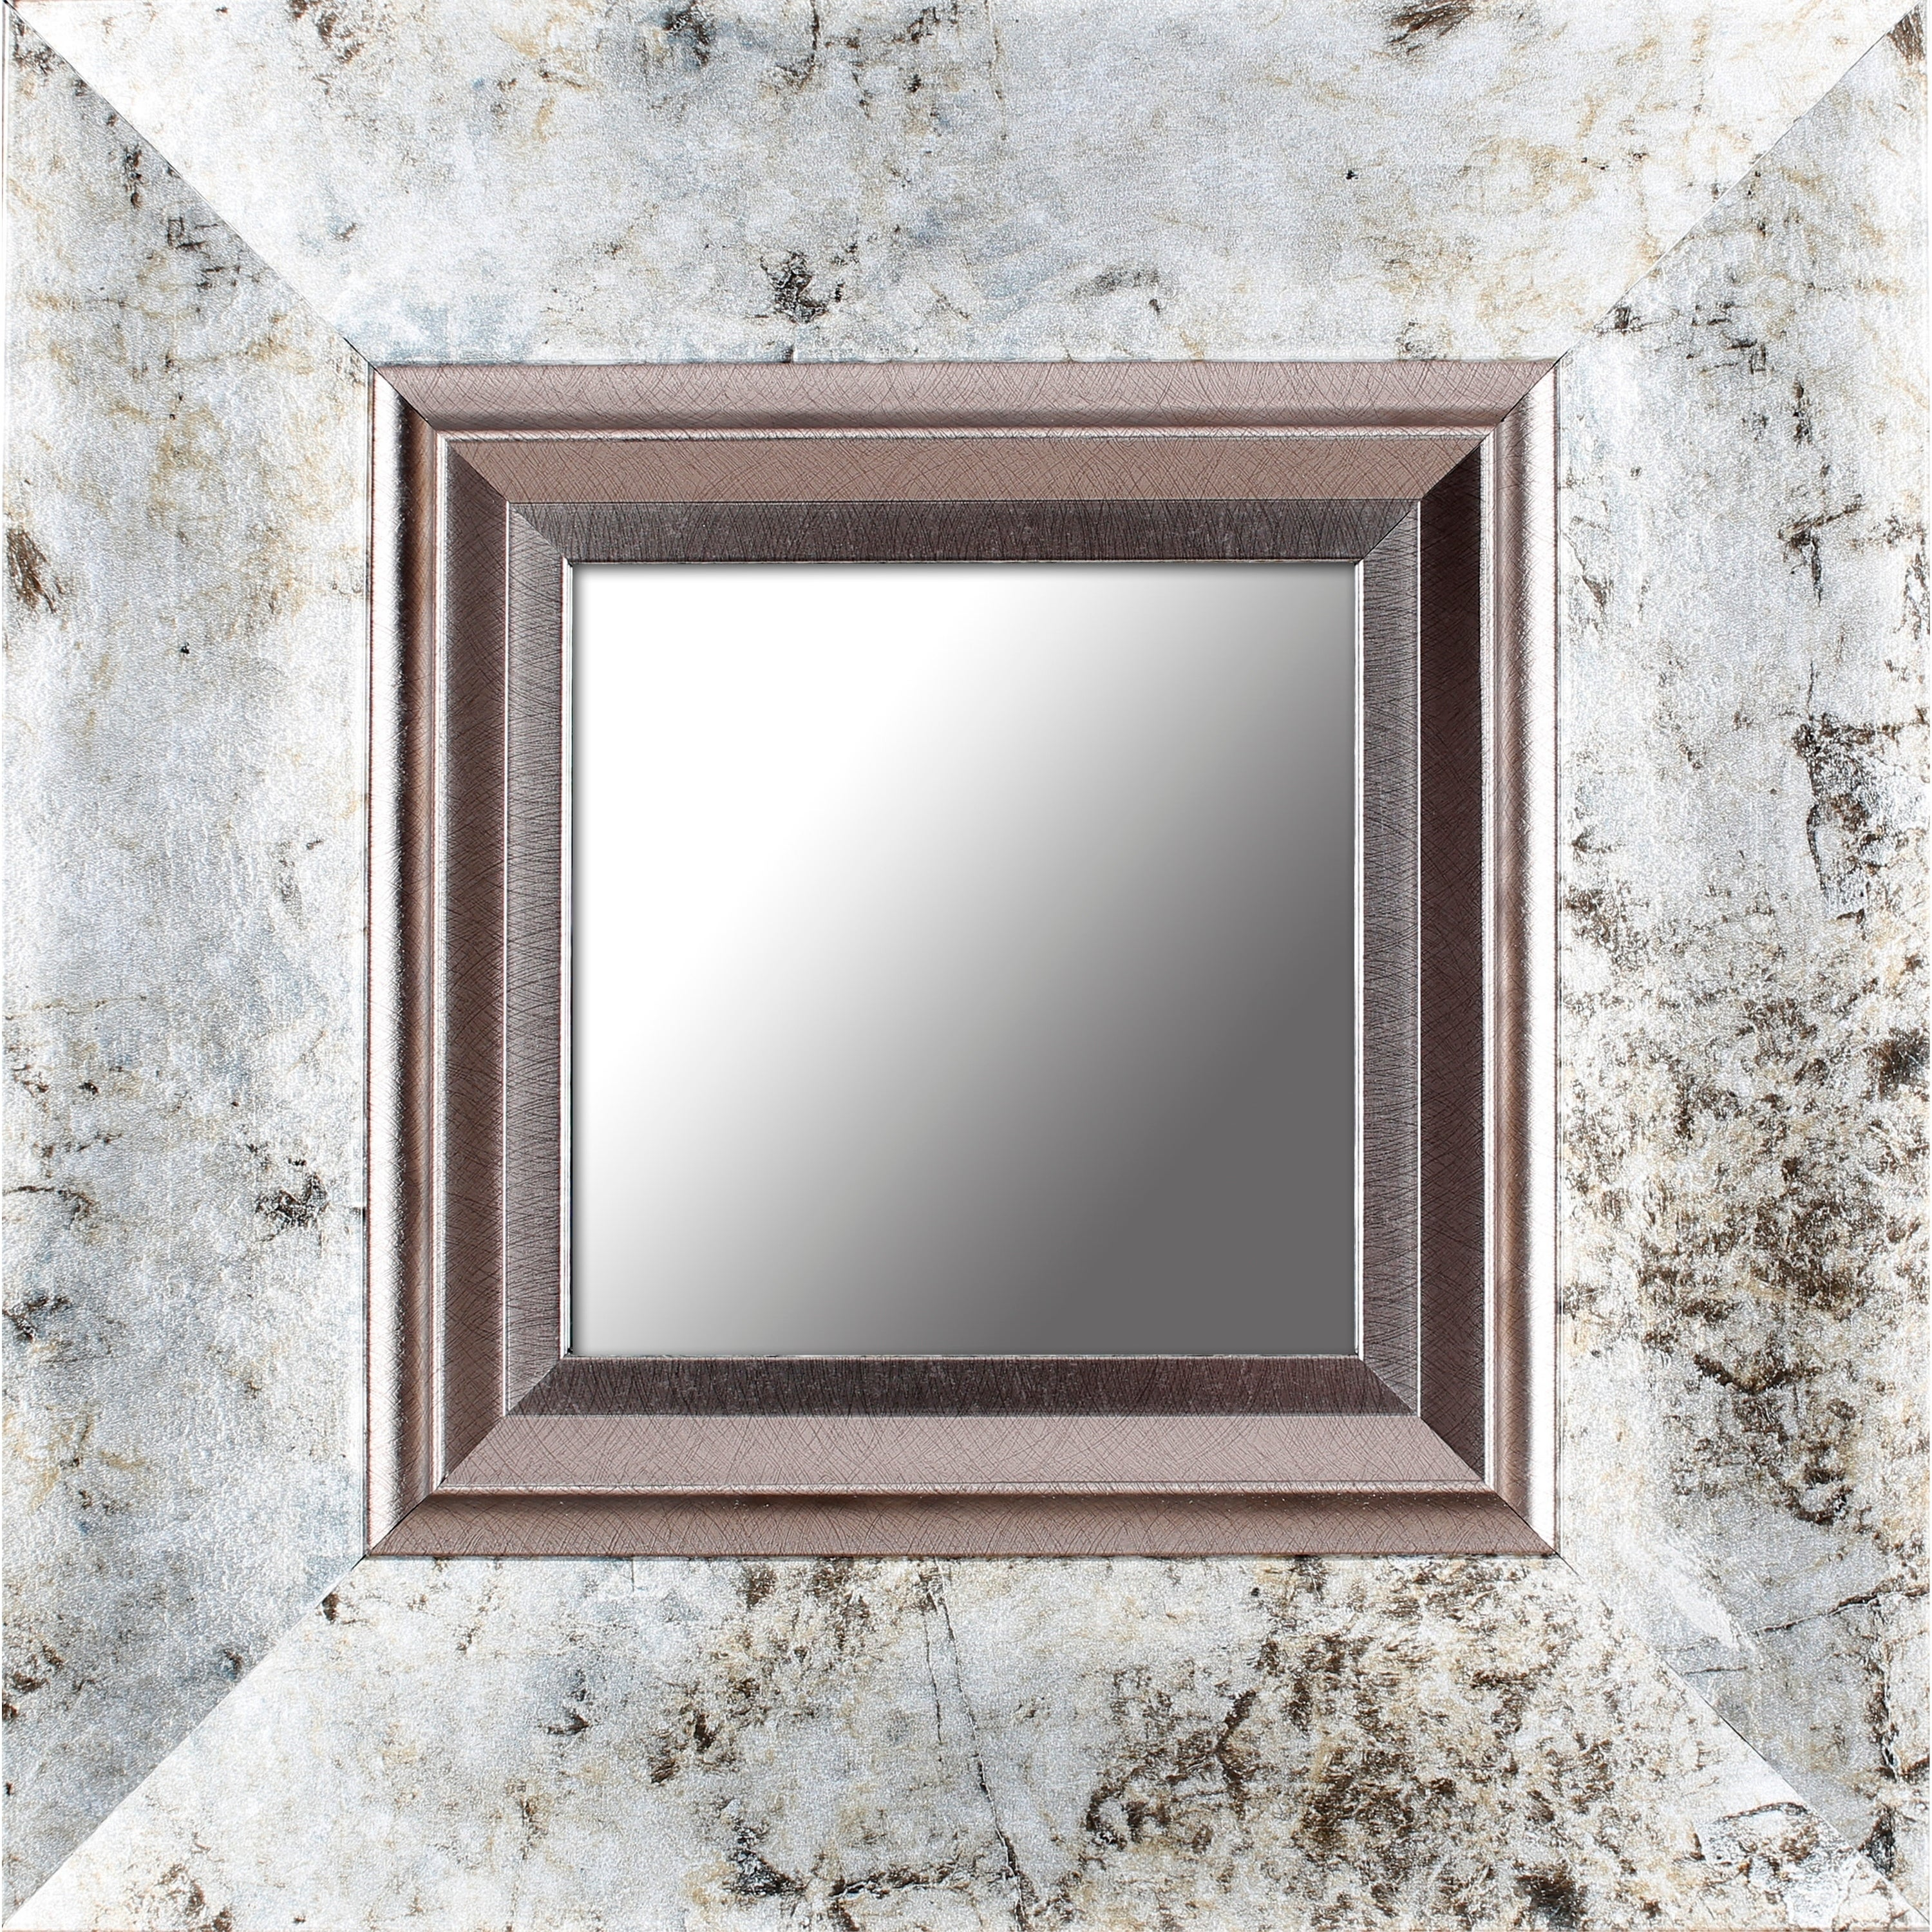 Mirrorize Canada Brown Marble Wall Mirrors Set Of 4 Free